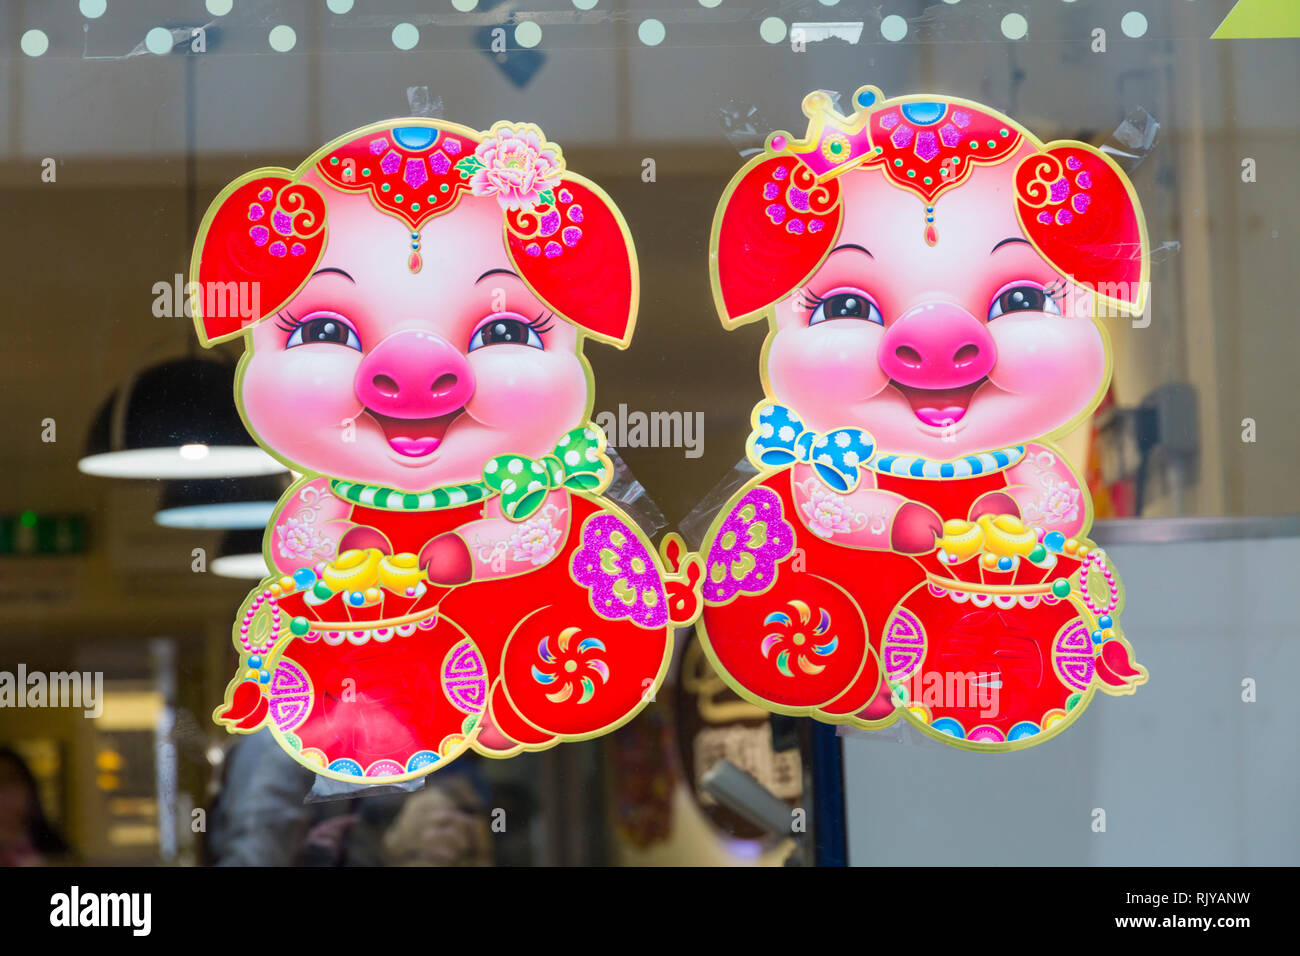 Chinese New Year celebrations celebrating year of the pig at China Town, London, UK in February - Stock Image